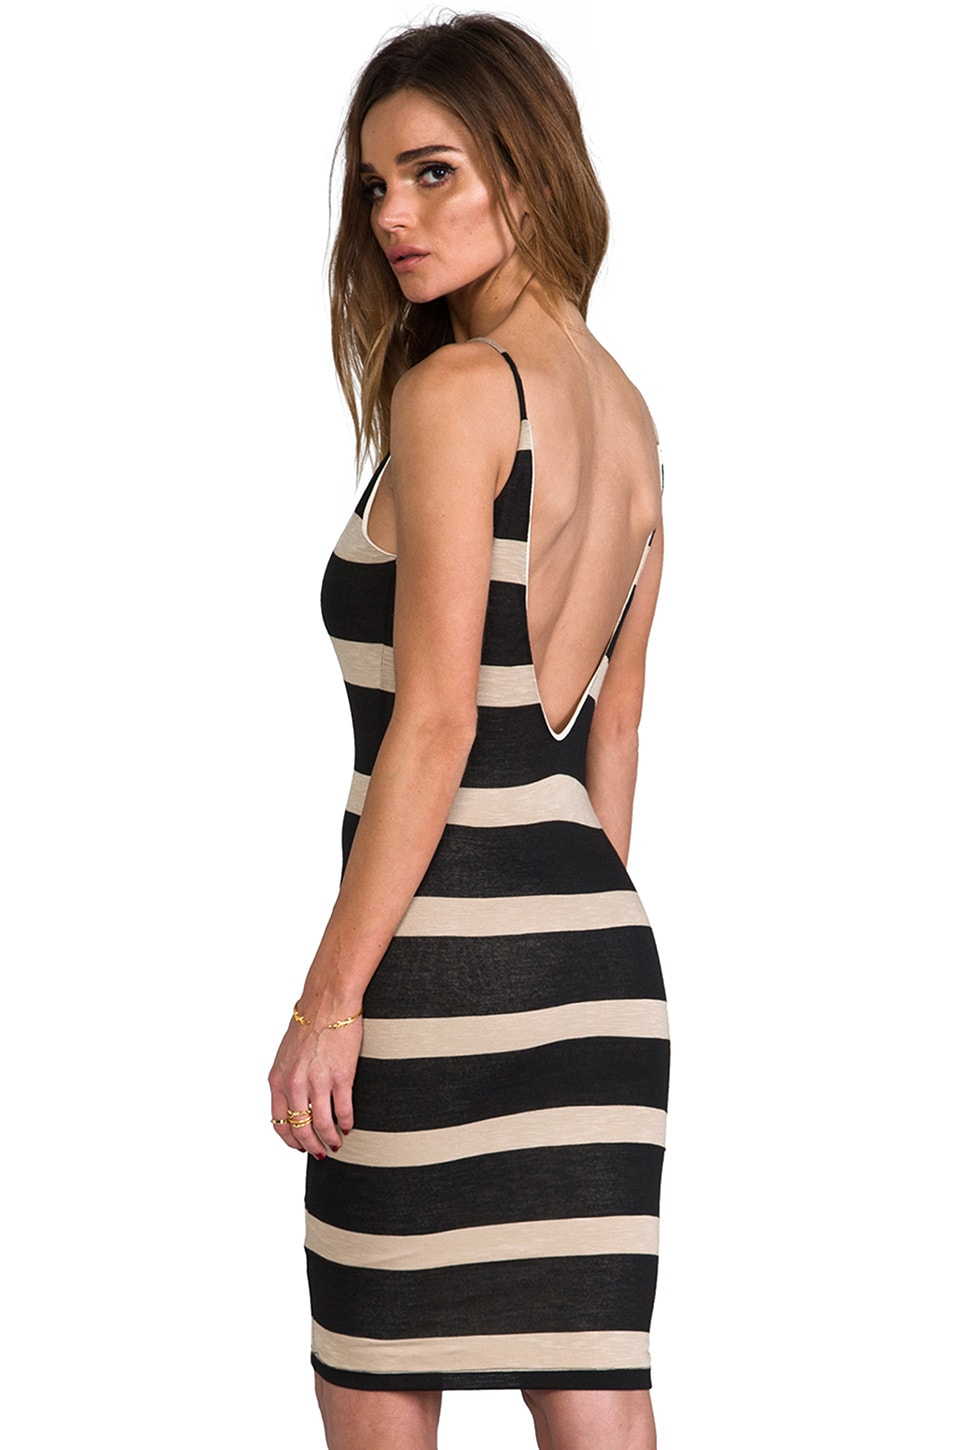 WOODLEIGH Elle Dress in Black/Camel Stripe